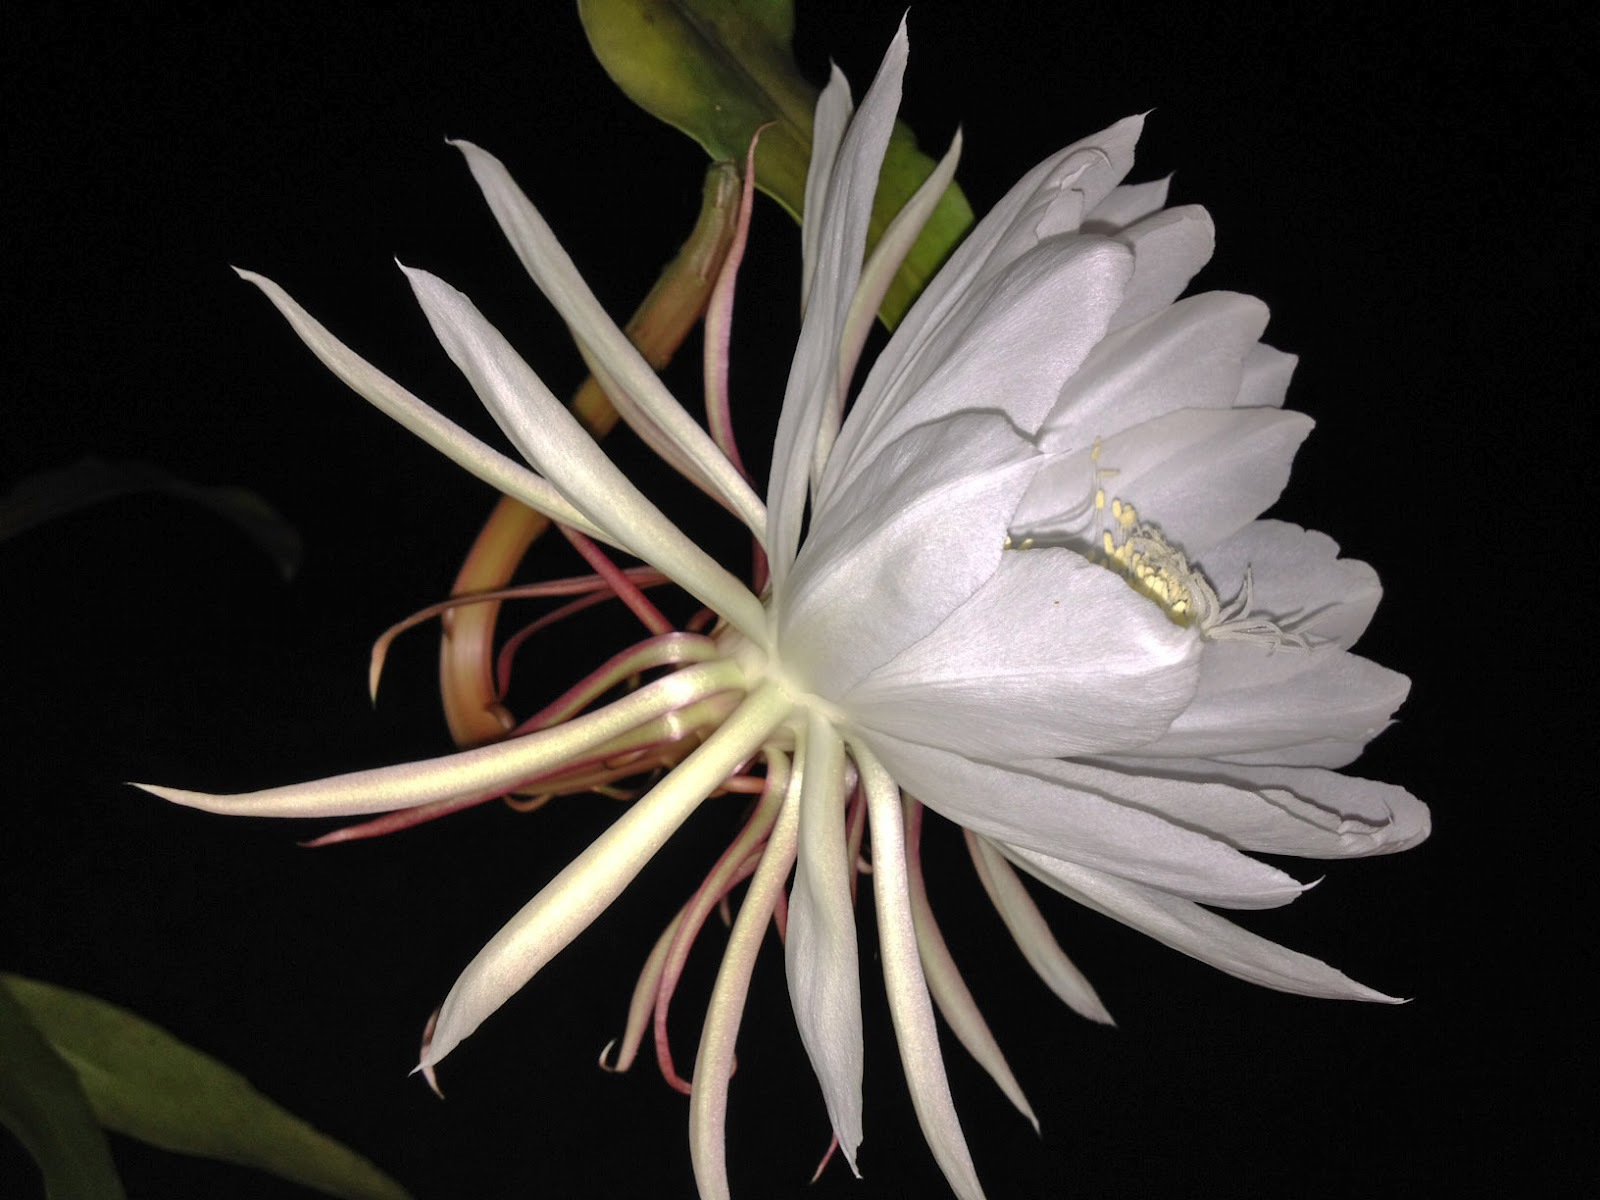 Night Blooming Cereus 4K